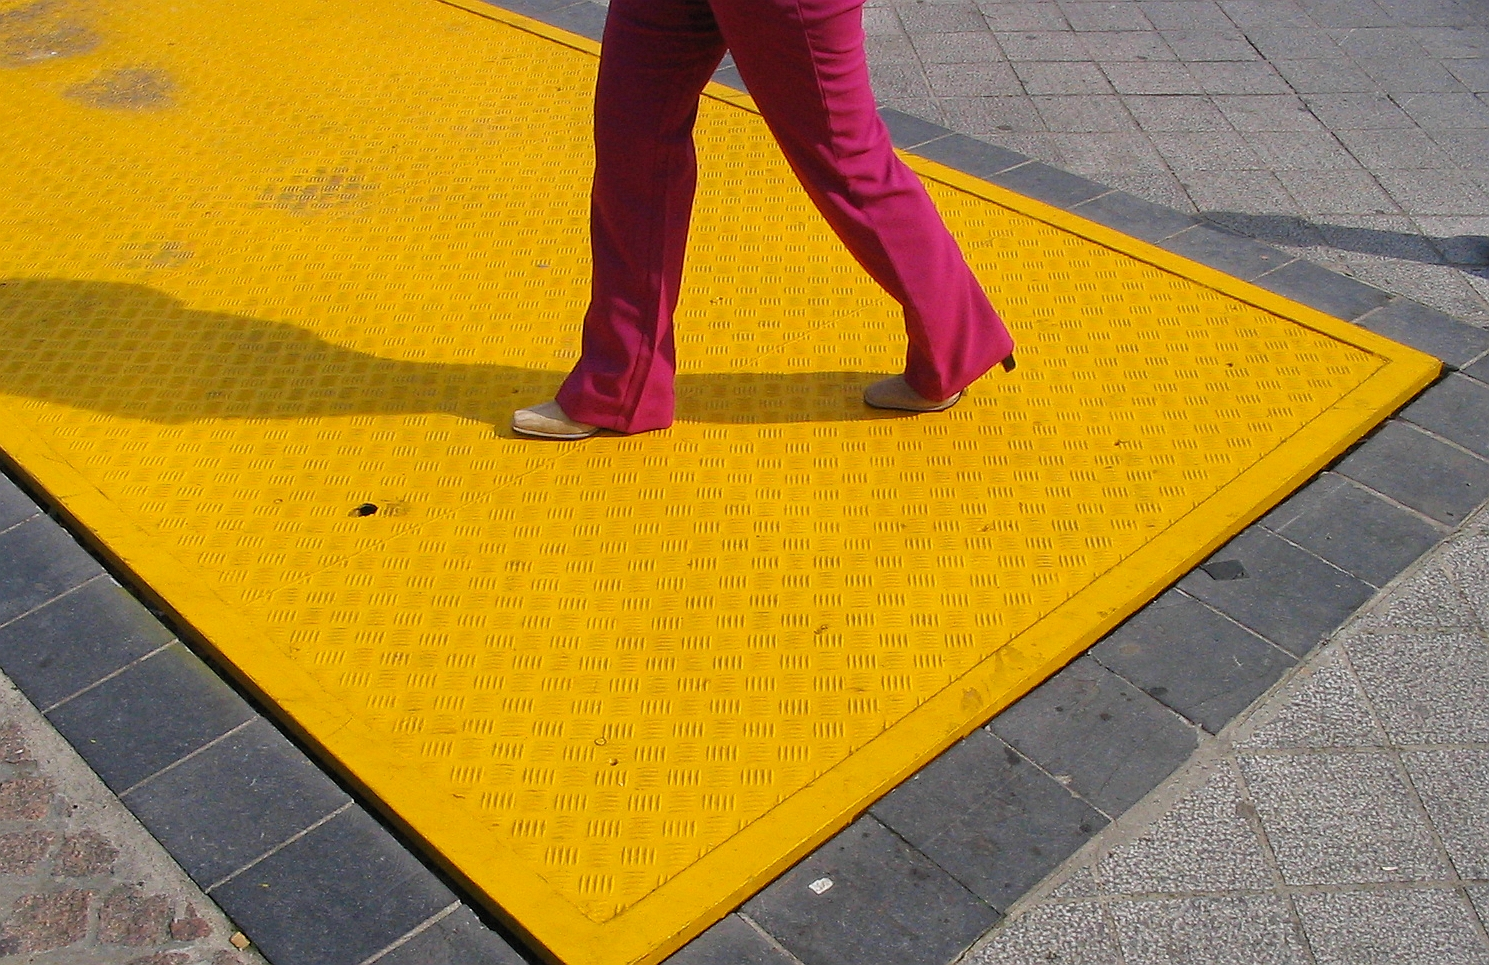 Pink-clad pants walking over bright yellow access panel. Image courtesy of sxc.hu user pixelbox